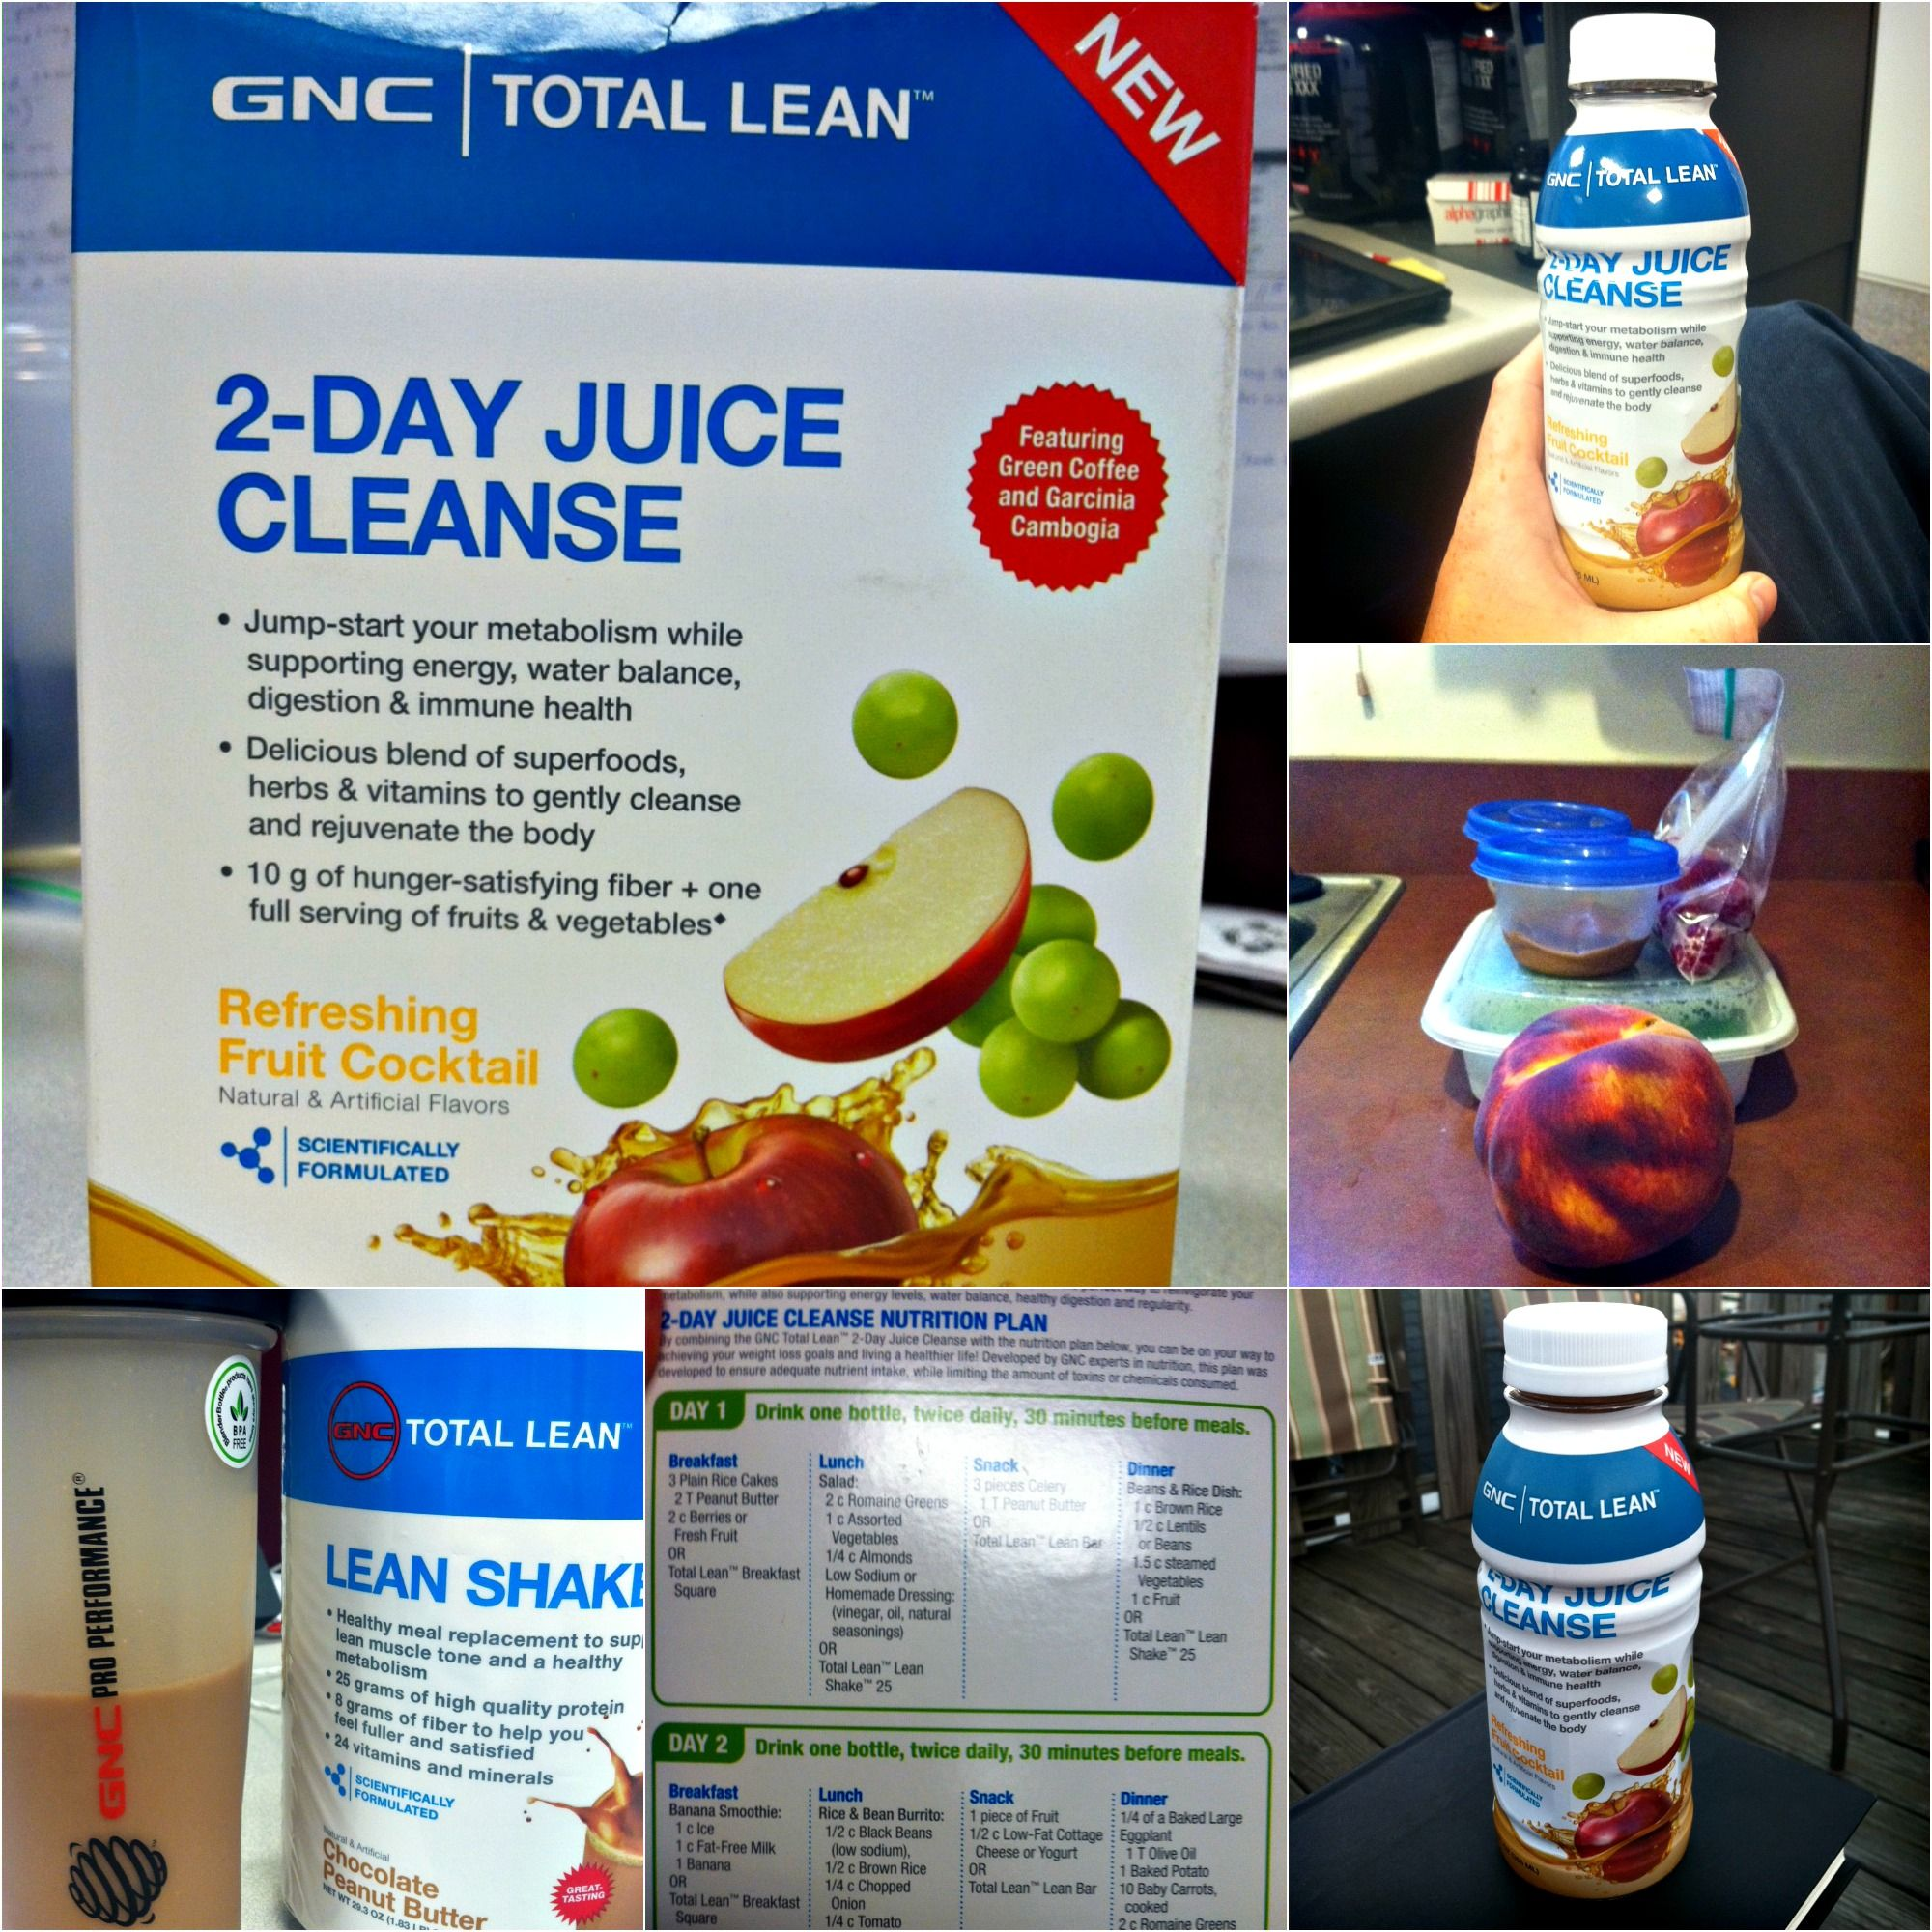 Wondering what a juice cleanse is really like day 2 of dans wondering what a juice cleanse is really like day 2 of dans experience with gnc malvernweather Images